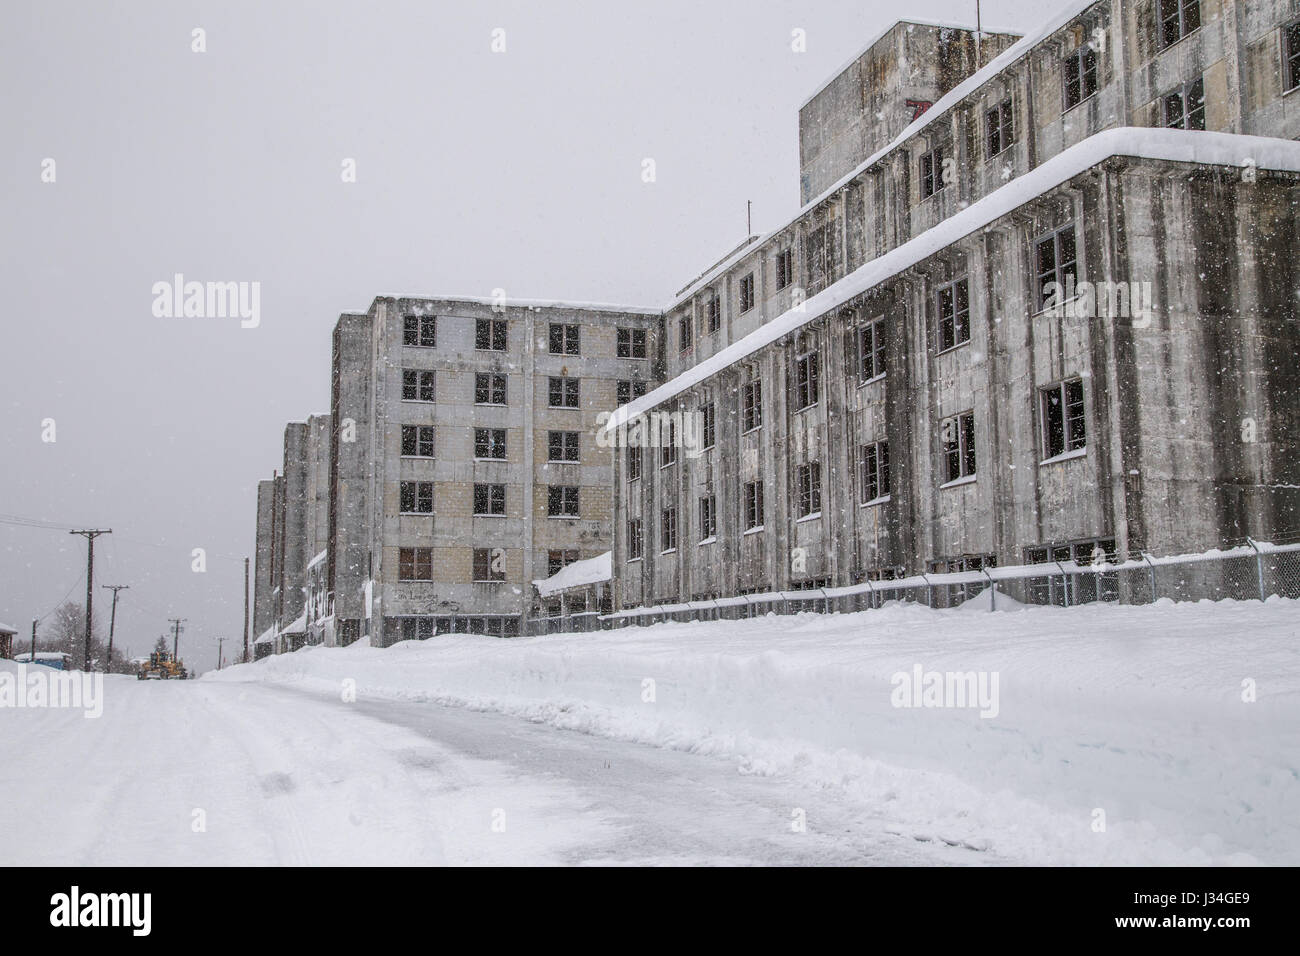 The Buckner Building in the snow, an abandoned former U.S. military building in Whittier, Alaska, USA - Stock Image